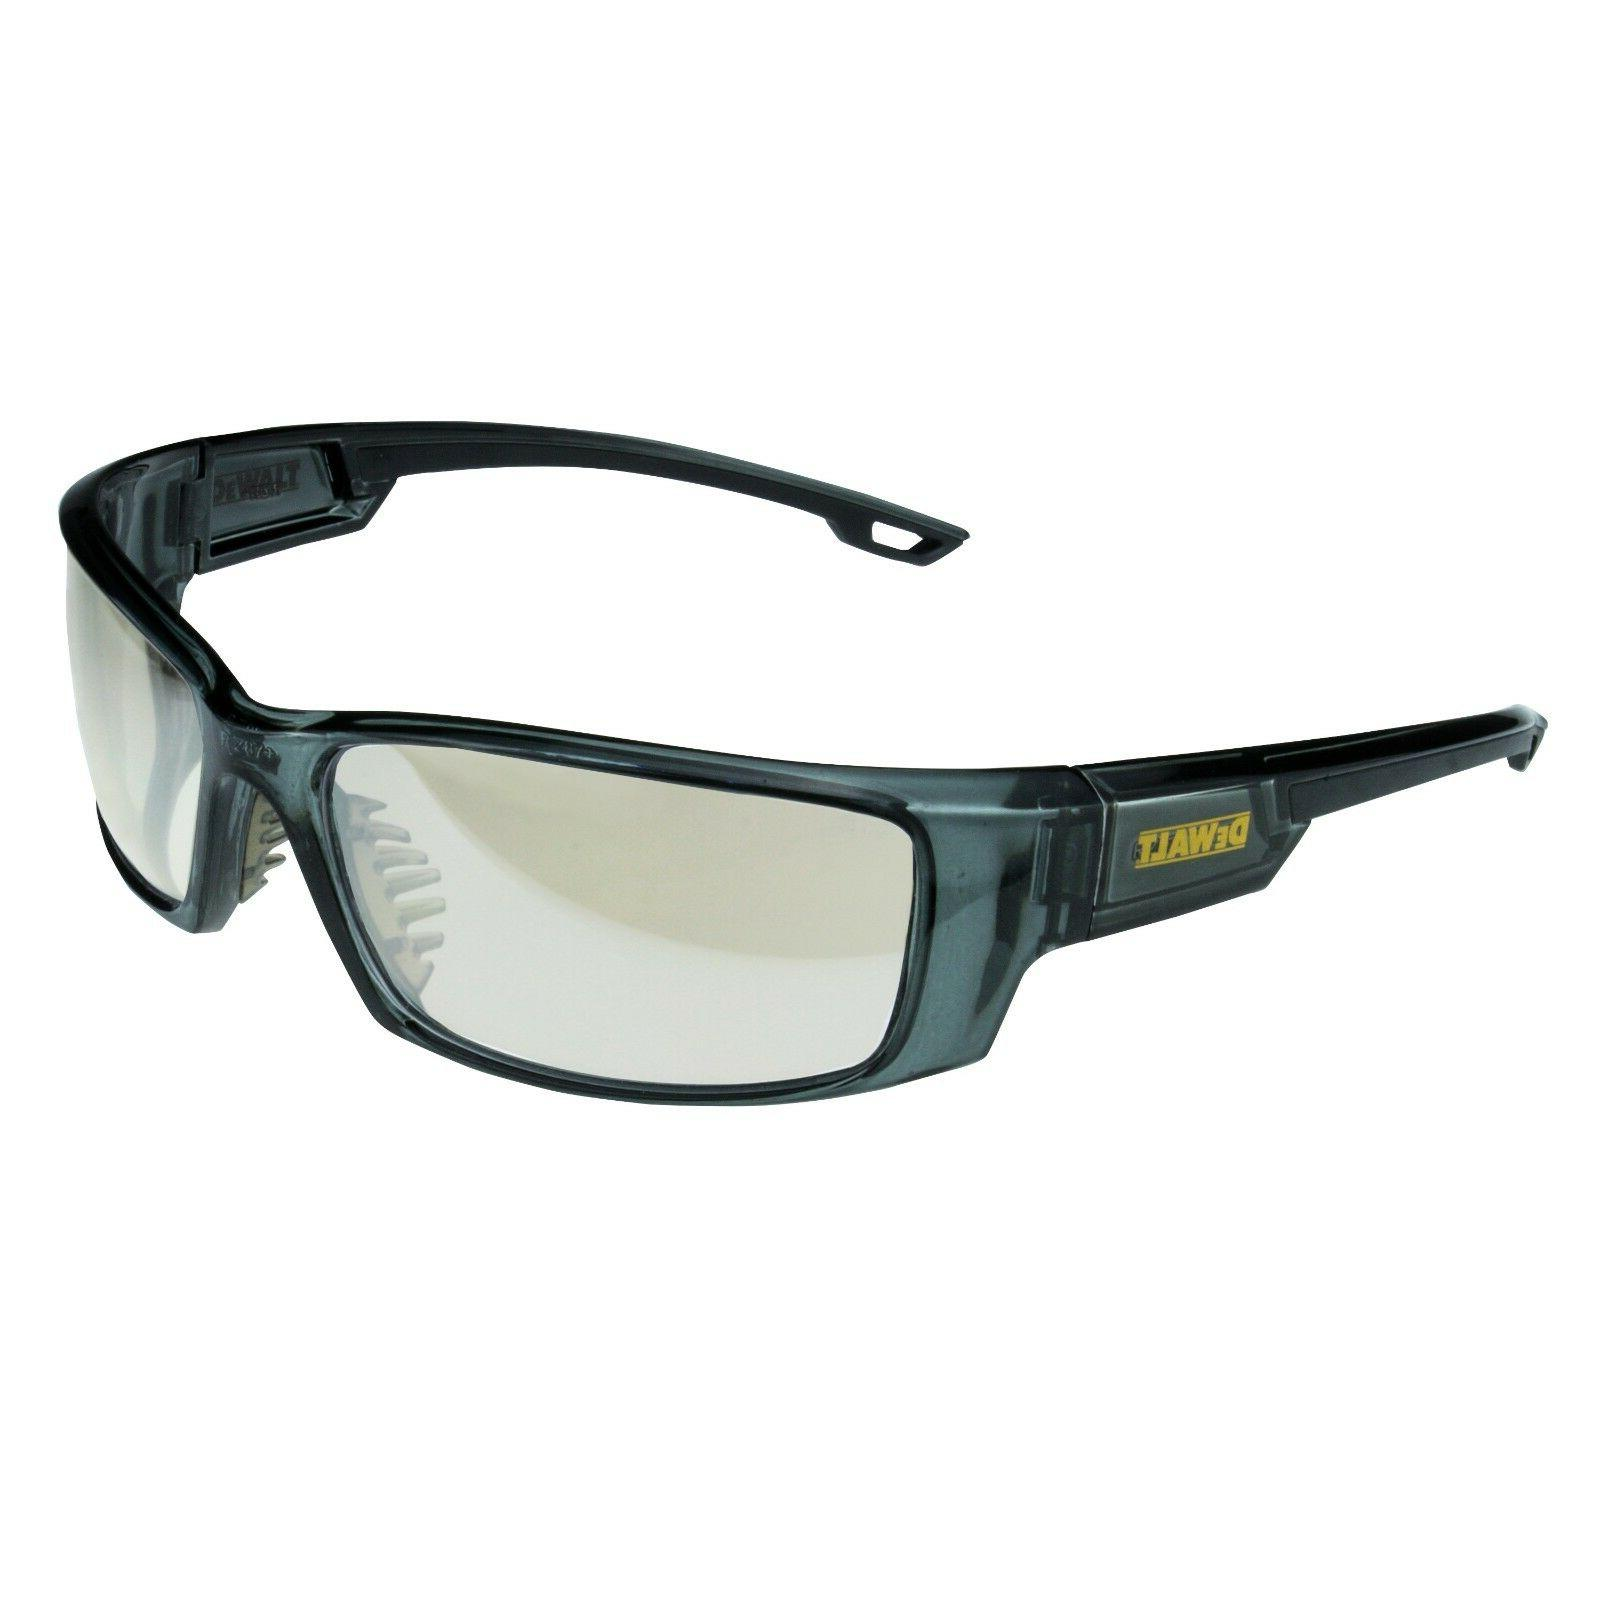 dpg104 excavator safety lens protective safety glasses